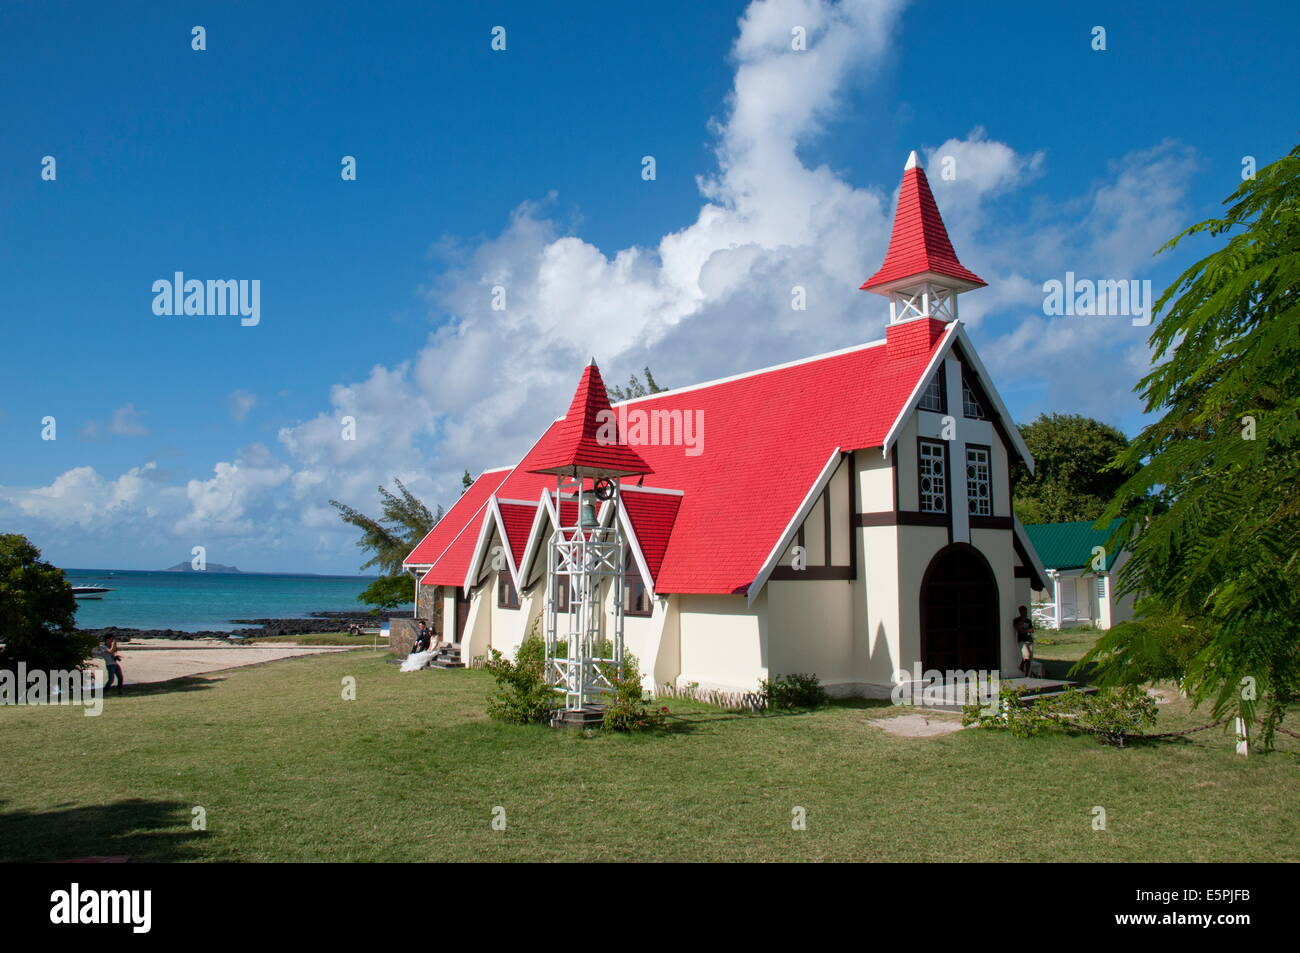 A newly wed couple posing for photos outside the red roofed church at Cap Malheureux on the northwest coast of Mauritius - Stock Image